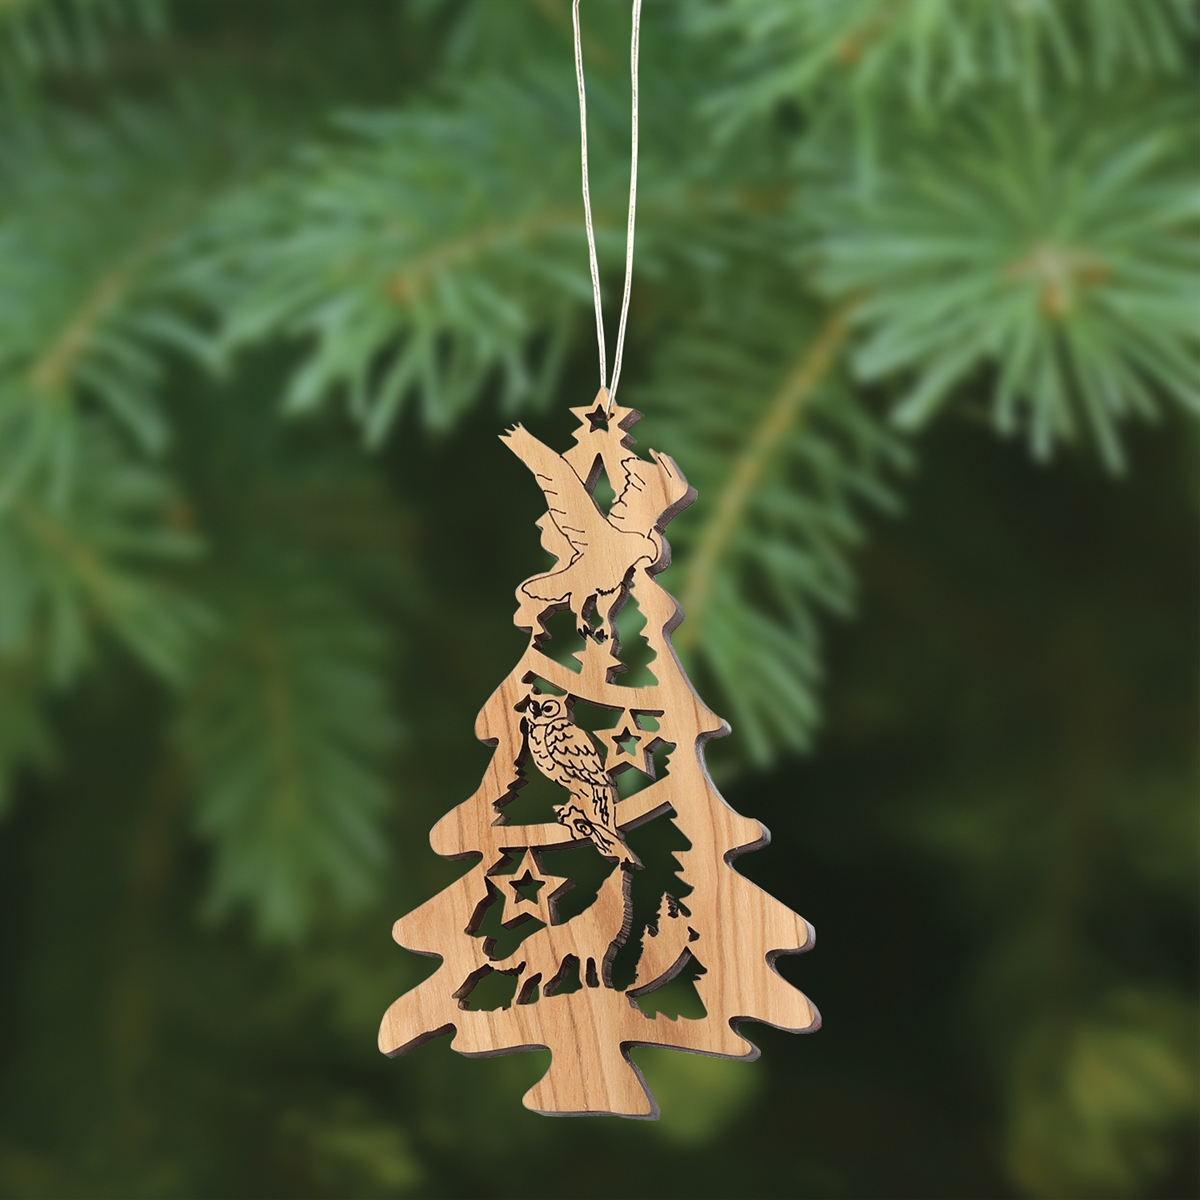 Wildlife Tree Ornament